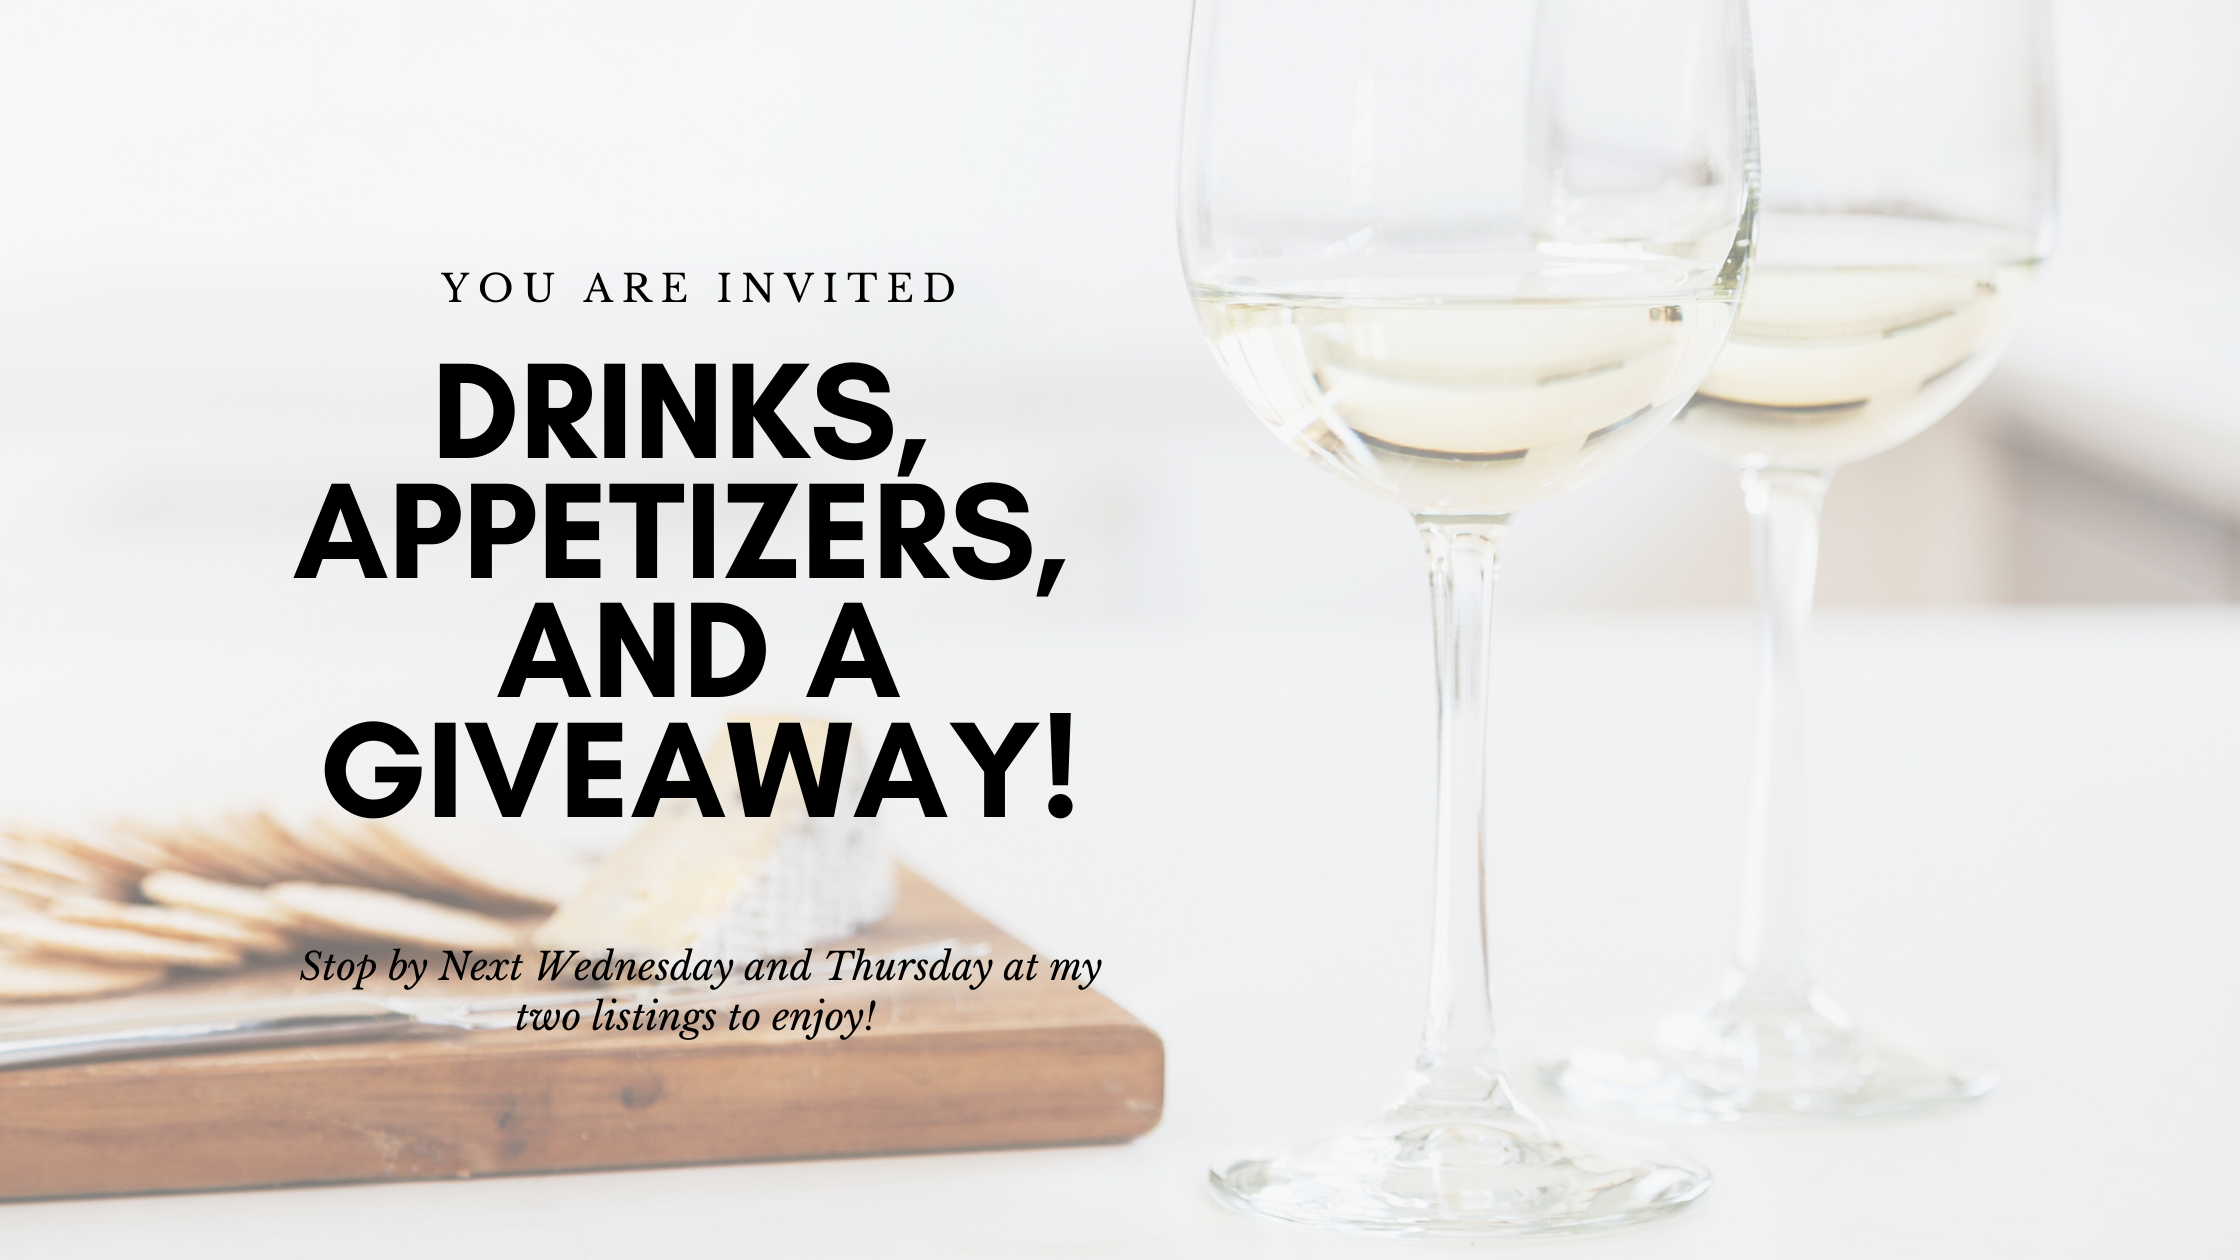 Realtors, Join me for appetizers, drinks and a giveaway!